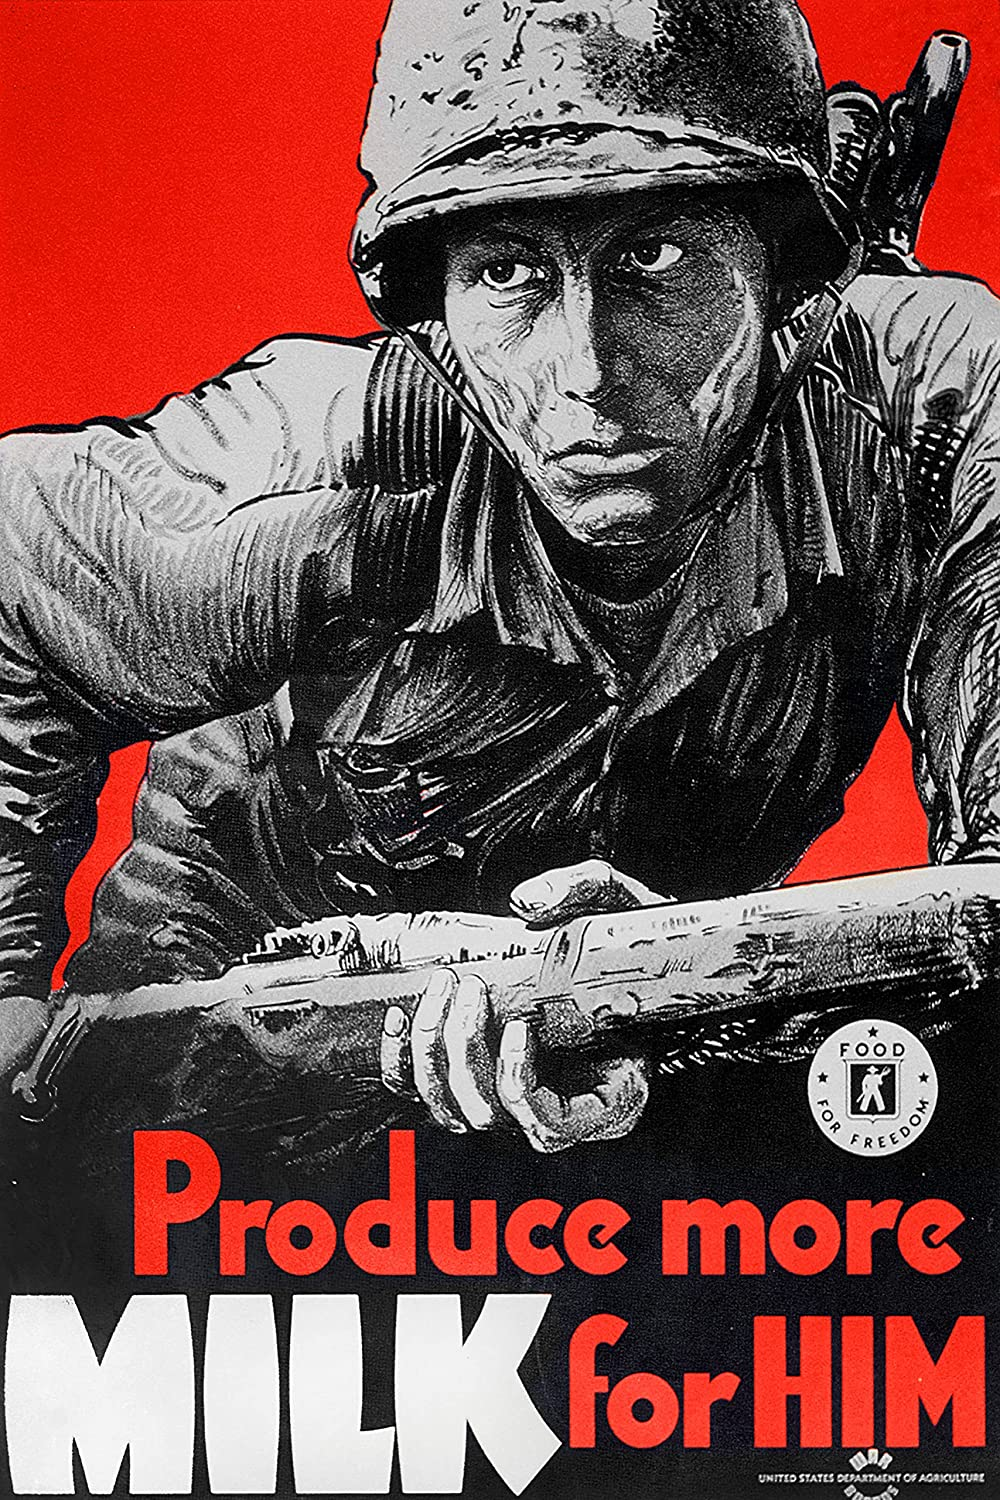 American WW2 Propaganda Poster - Produce free Him More Our shop most popular Milk Foo for